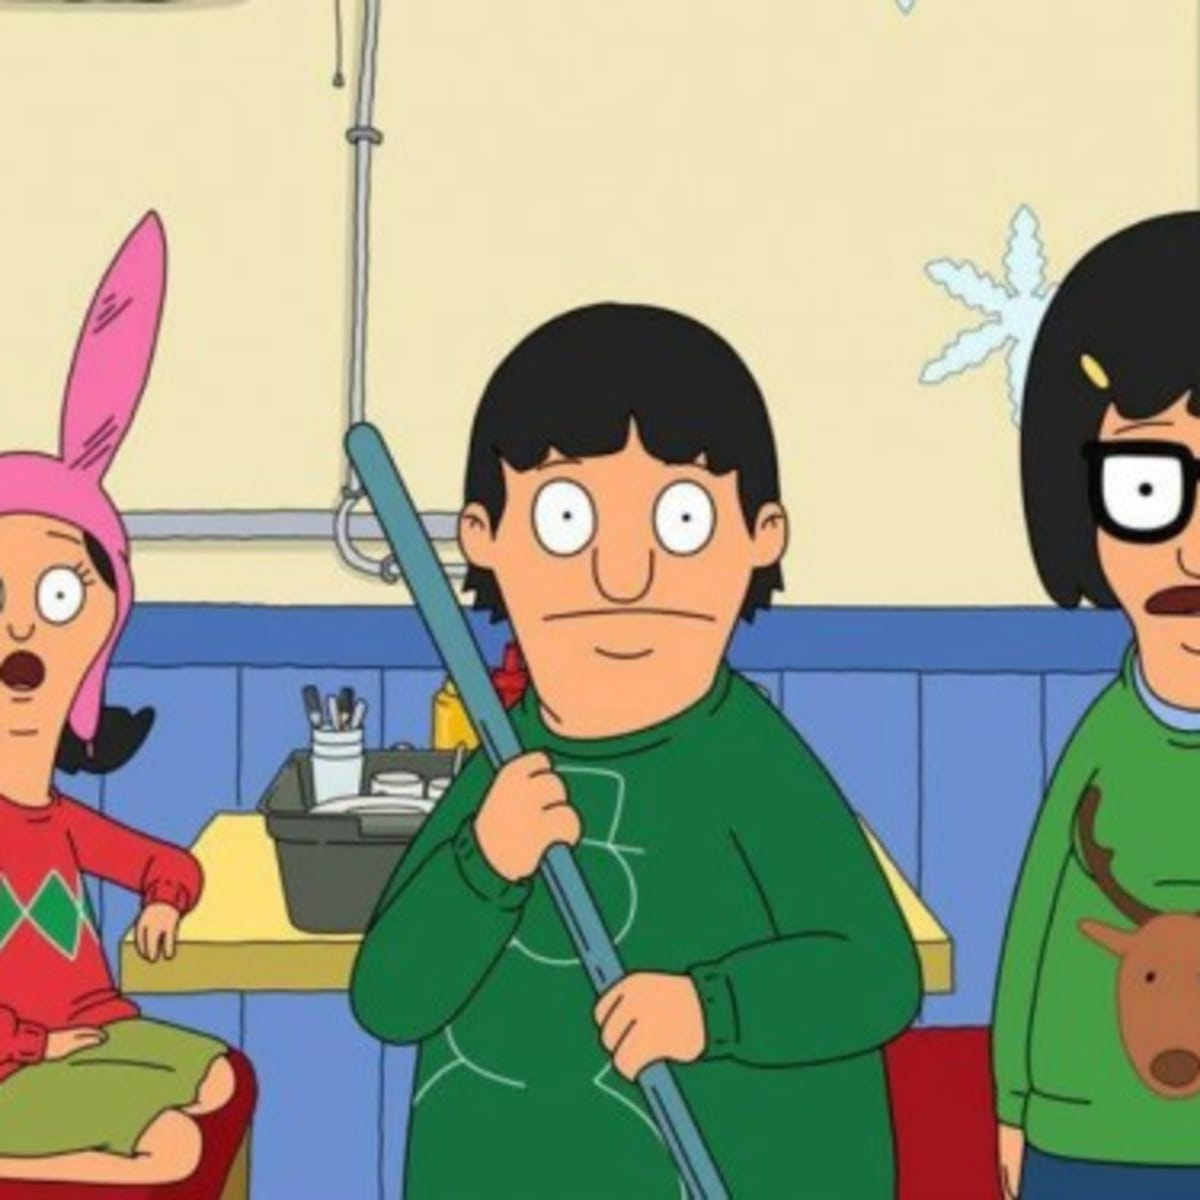 Watch The Belcher Family Journey To A Rave In The Bob S Burgers Christmas Special Edm Com The Latest Electronic Dance Music News Reviews Artists